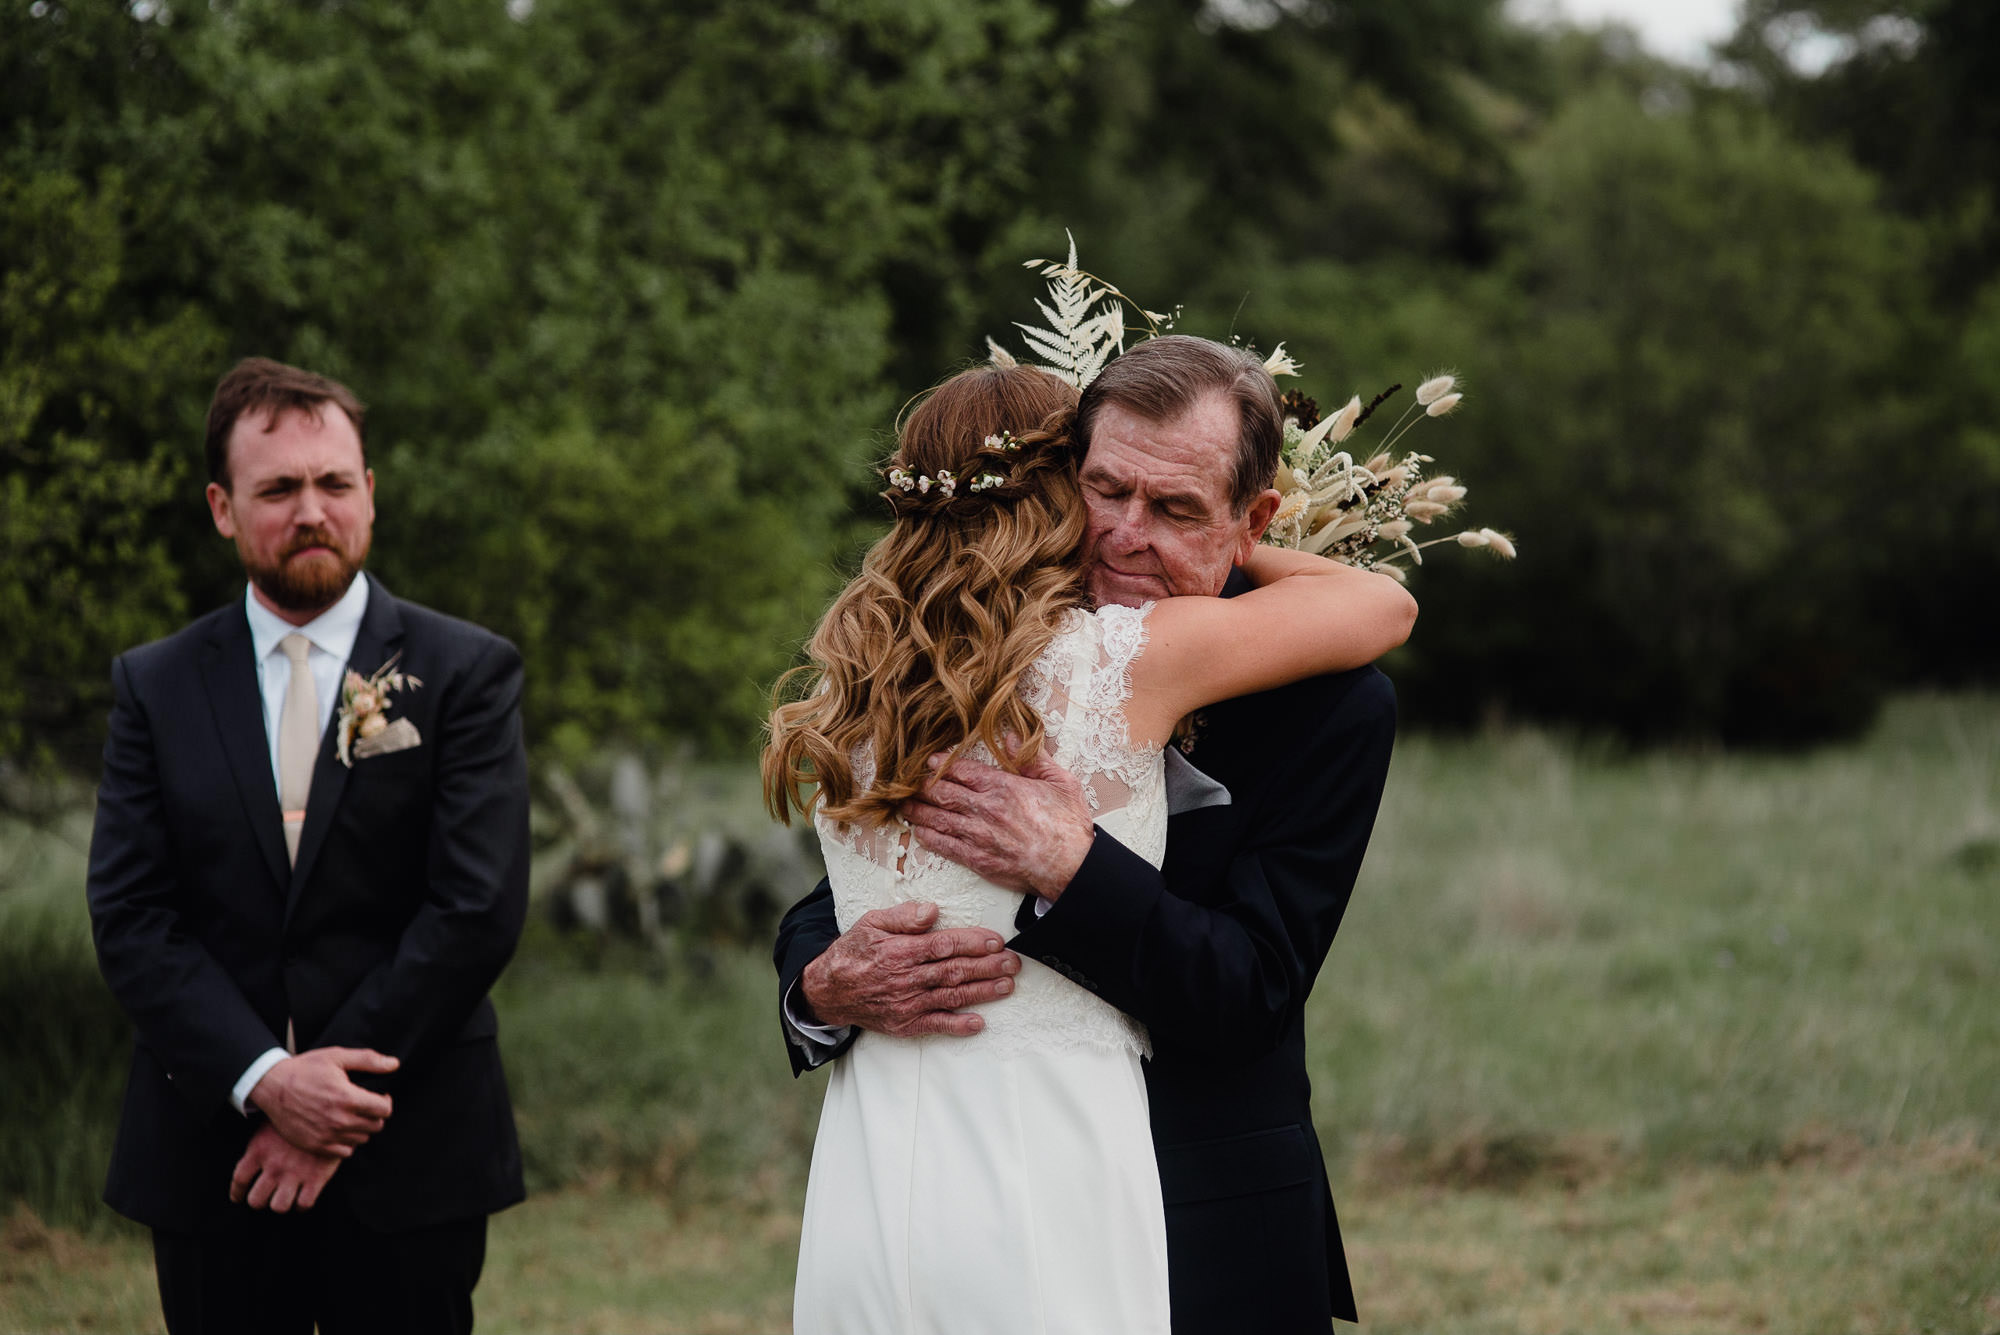 Kaci hugs her dad at the end of the aisle at her Plant at Kyle wedding